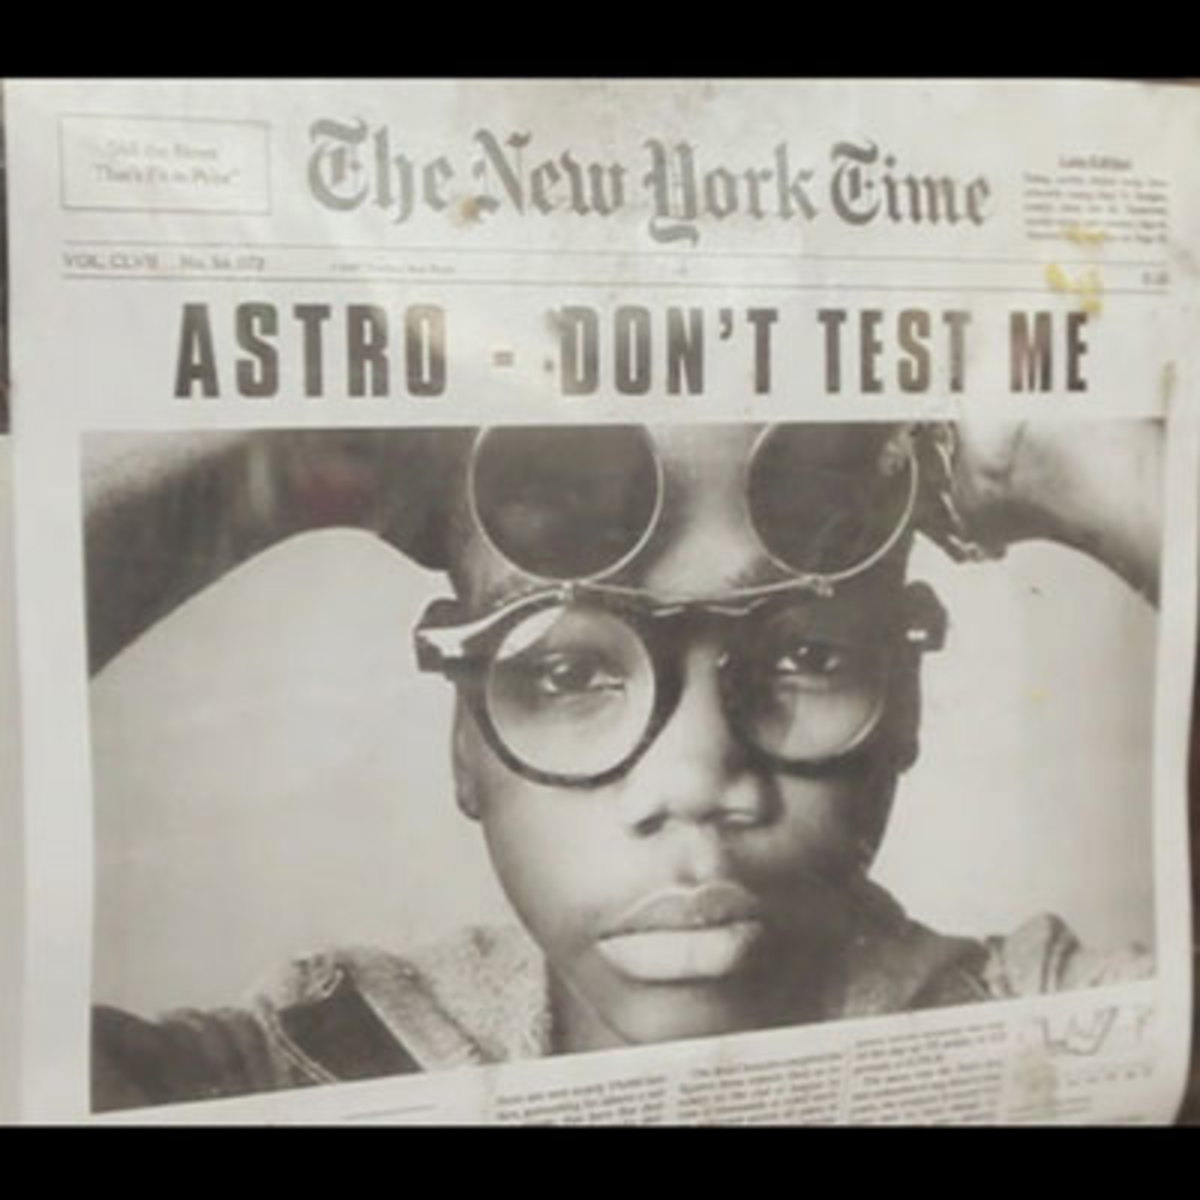 astro-donttestme.jpg